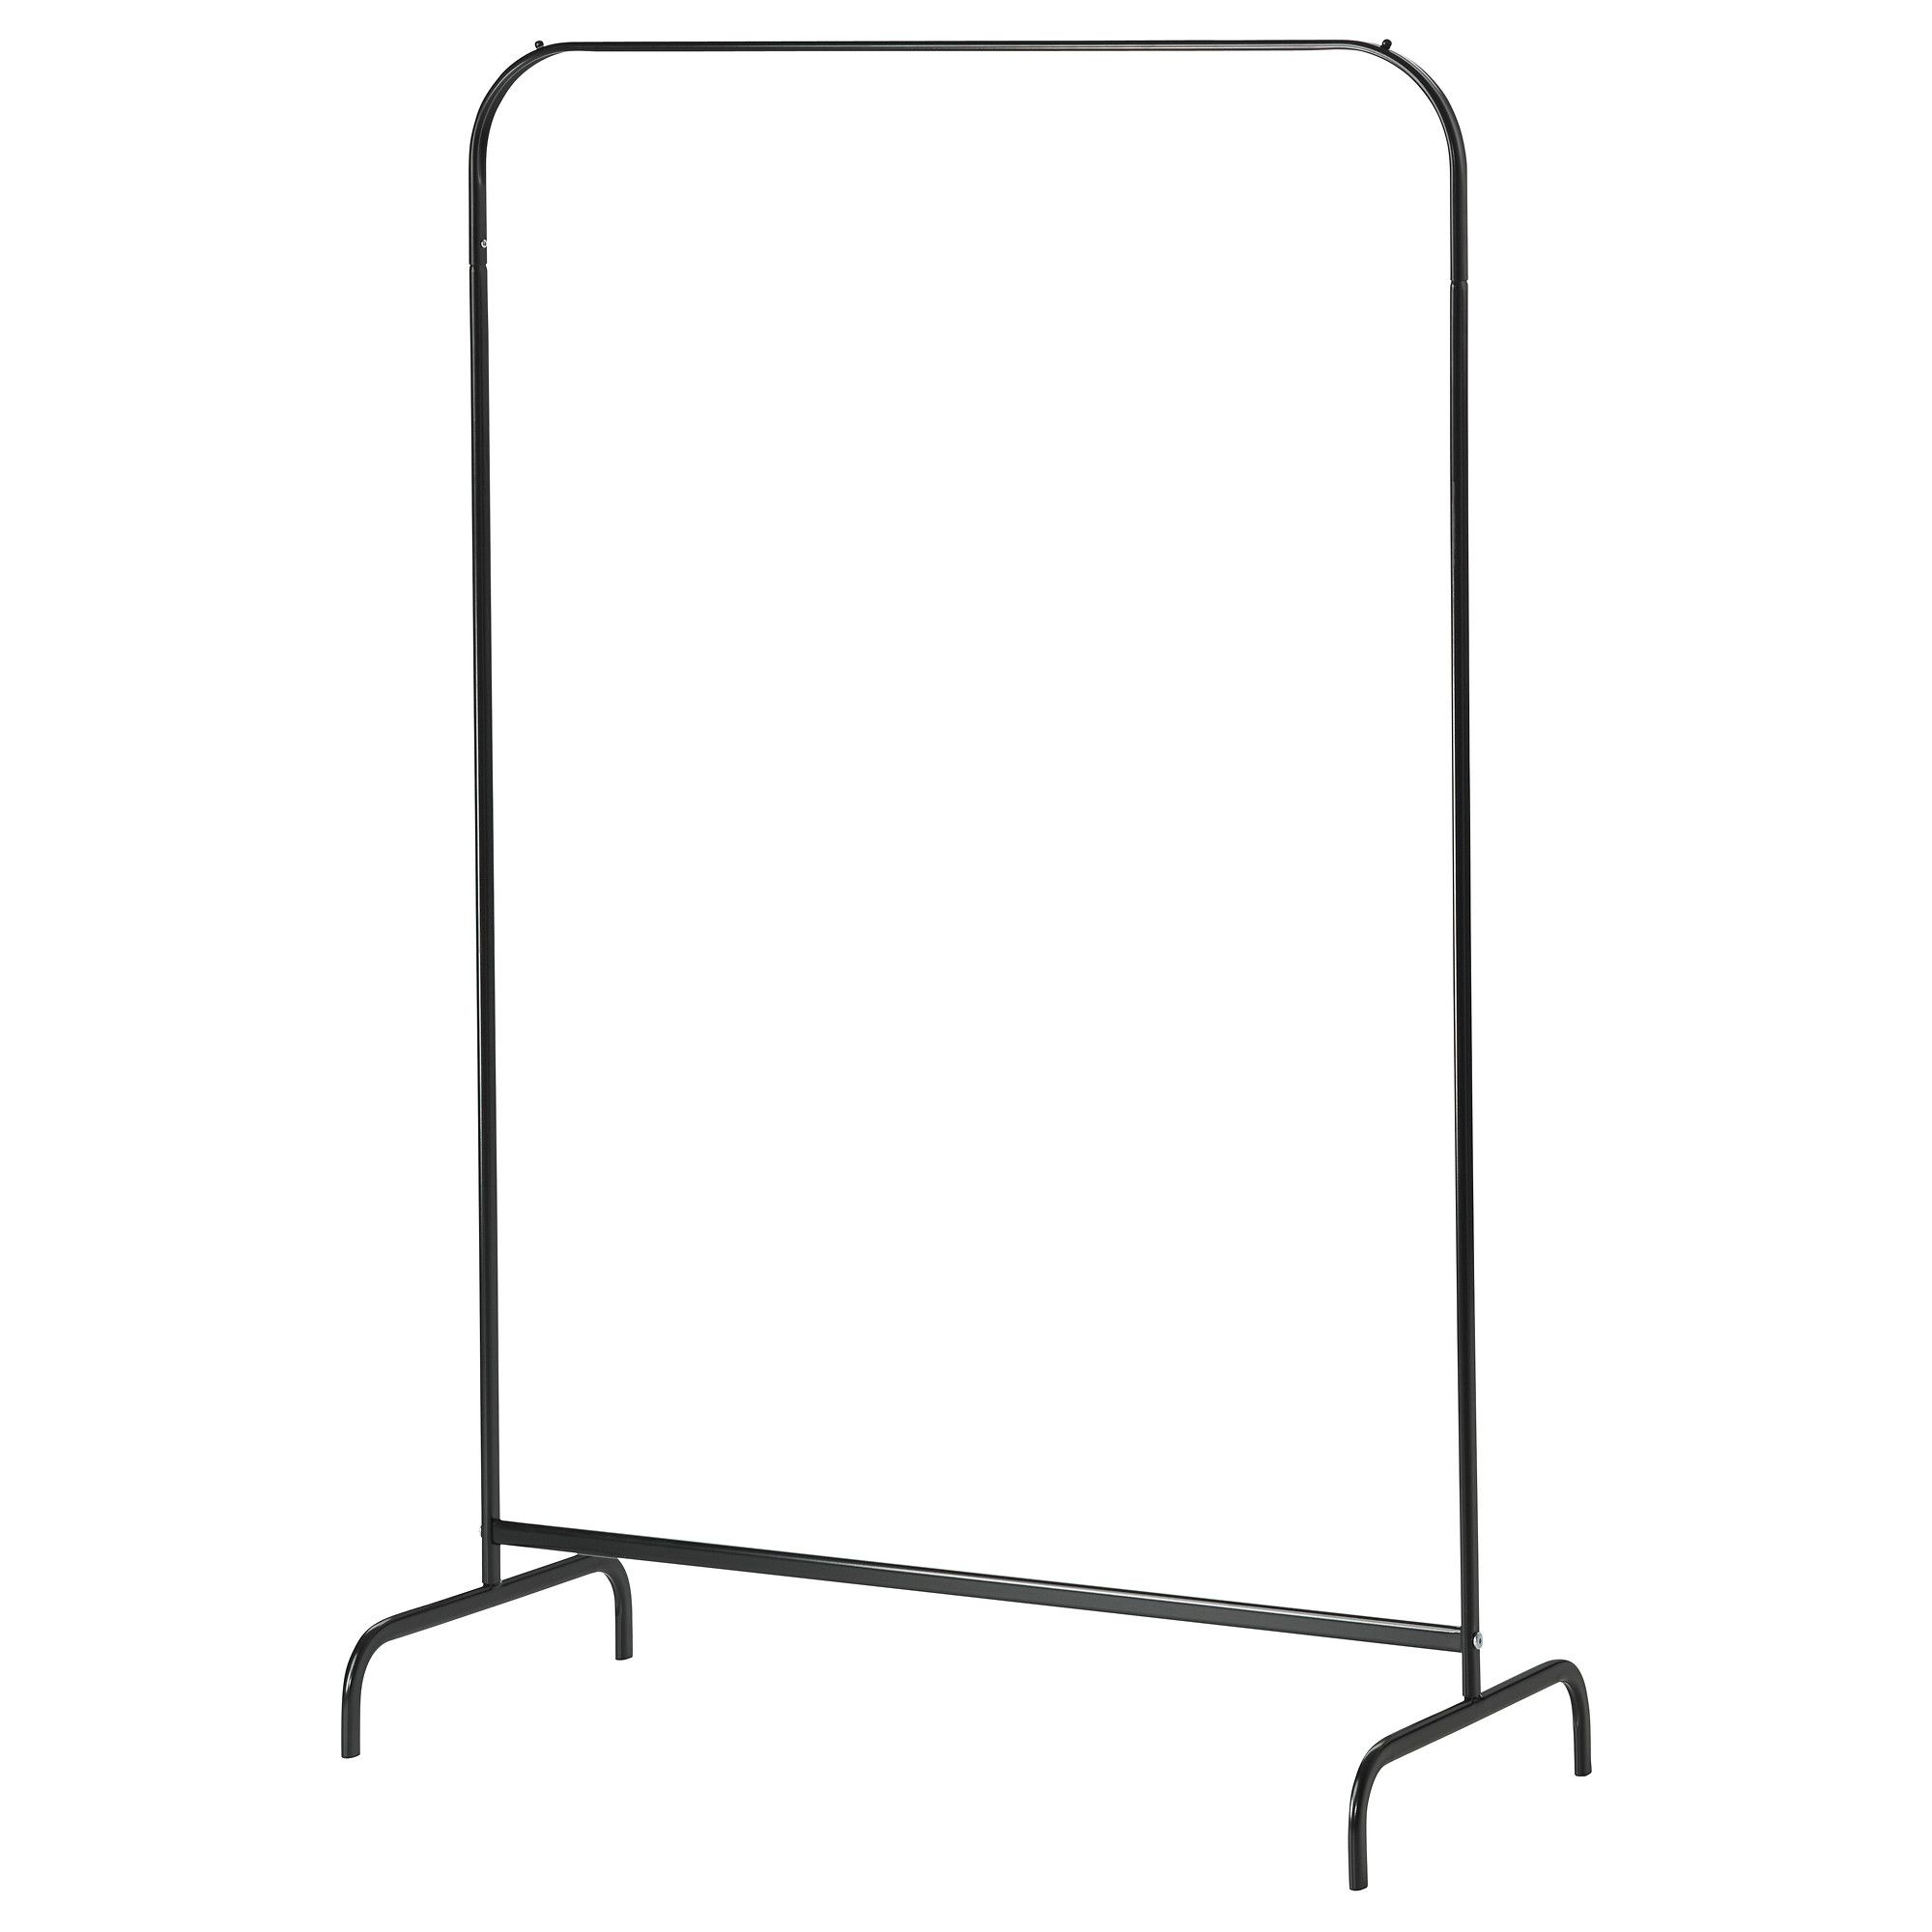 mulig clothes rack black ikea 999 curved edges may mean the clothes will slip